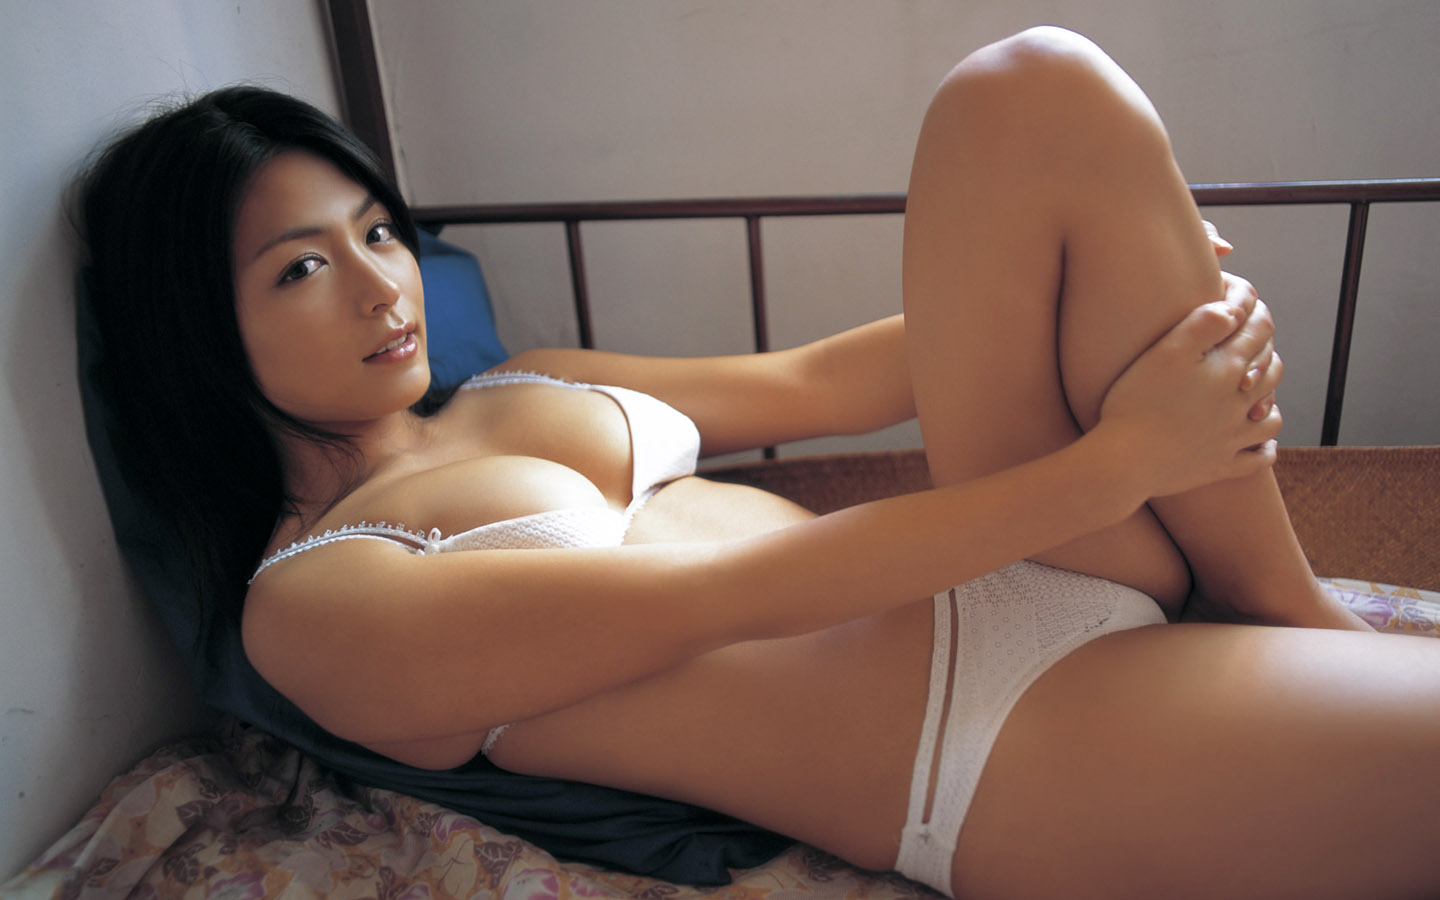 http://3.bp.blogspot.com/_yimNn_5eZfg/TMrJEYxPCVI/AAAAAAAAAXQ/9wv0eS6_mHE/s1600/super+wow+Asian+Girl+%28a+asian+girl+wallpaper+Asian+Girl+22%29.jpg